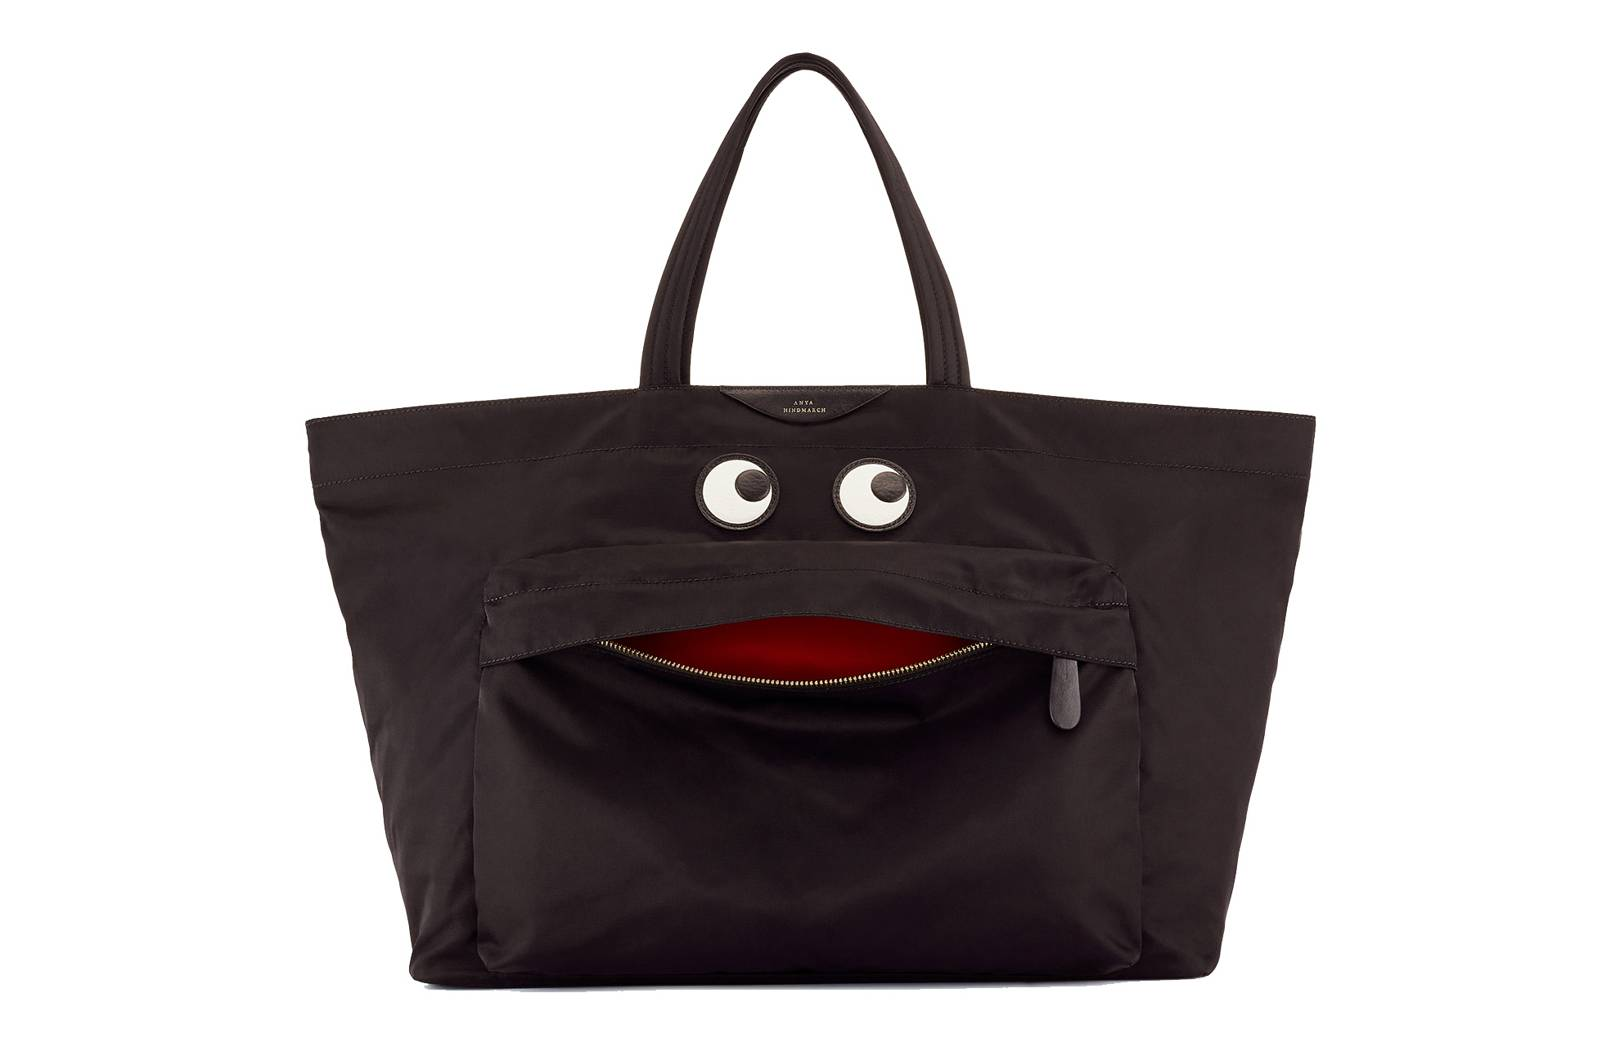 Wear you Would An oversized tote? exclusive photo